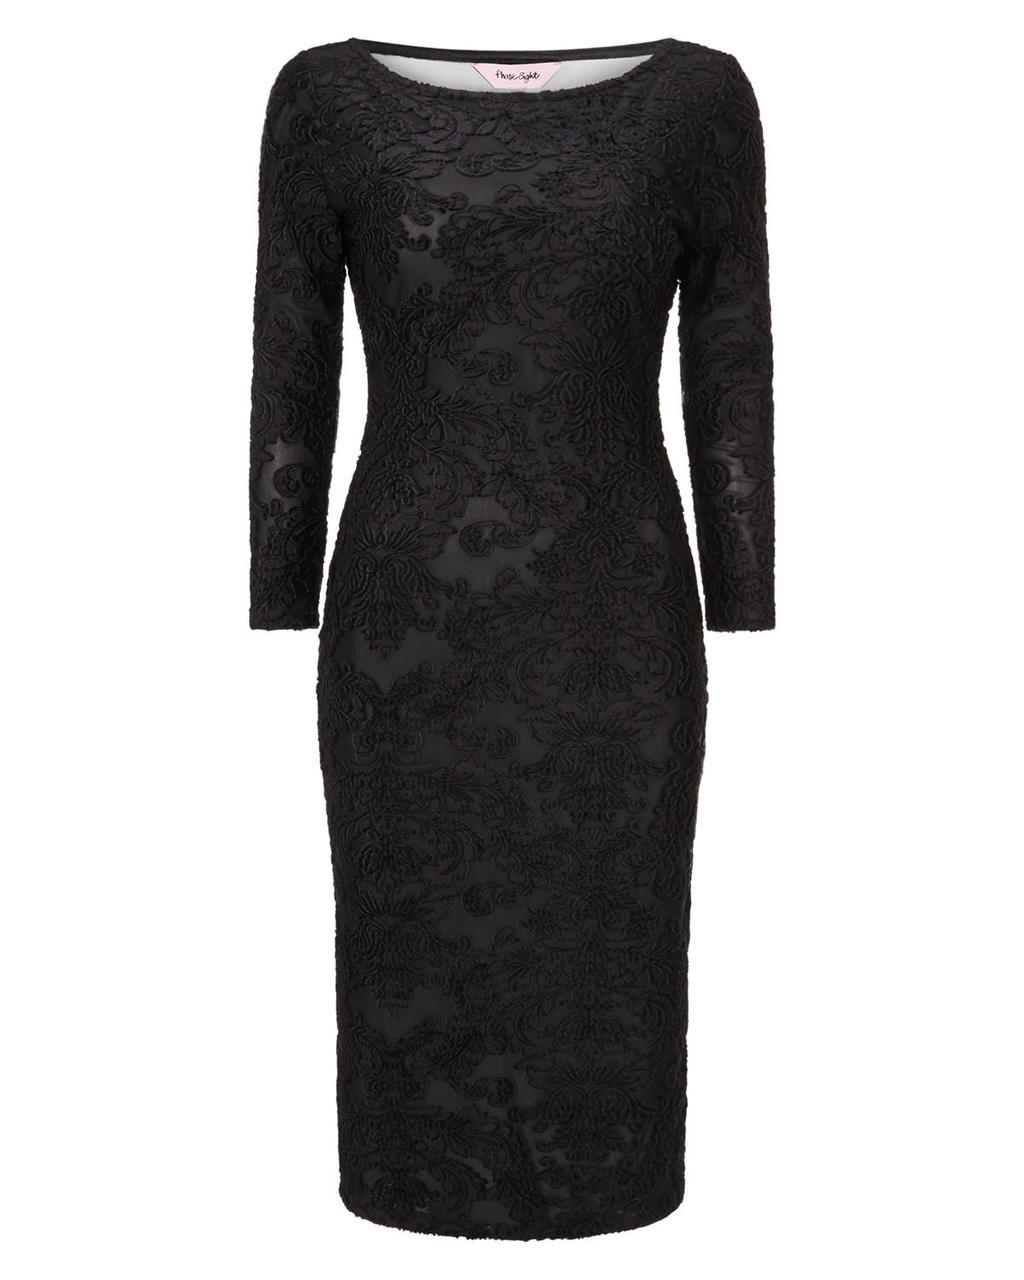 Elvira Burnout Dress - neckline: round neck; fit: tight; style: bodycon; predominant colour: black; occasions: evening; length: just above the knee; fibres: polyester/polyamide - stretch; sleeve length: 3/4 length; sleeve style: standard; texture group: lace; pattern type: fabric; pattern size: standard; pattern: patterned/print; season: a/w 2015; trends: romantic goth; wardrobe: event